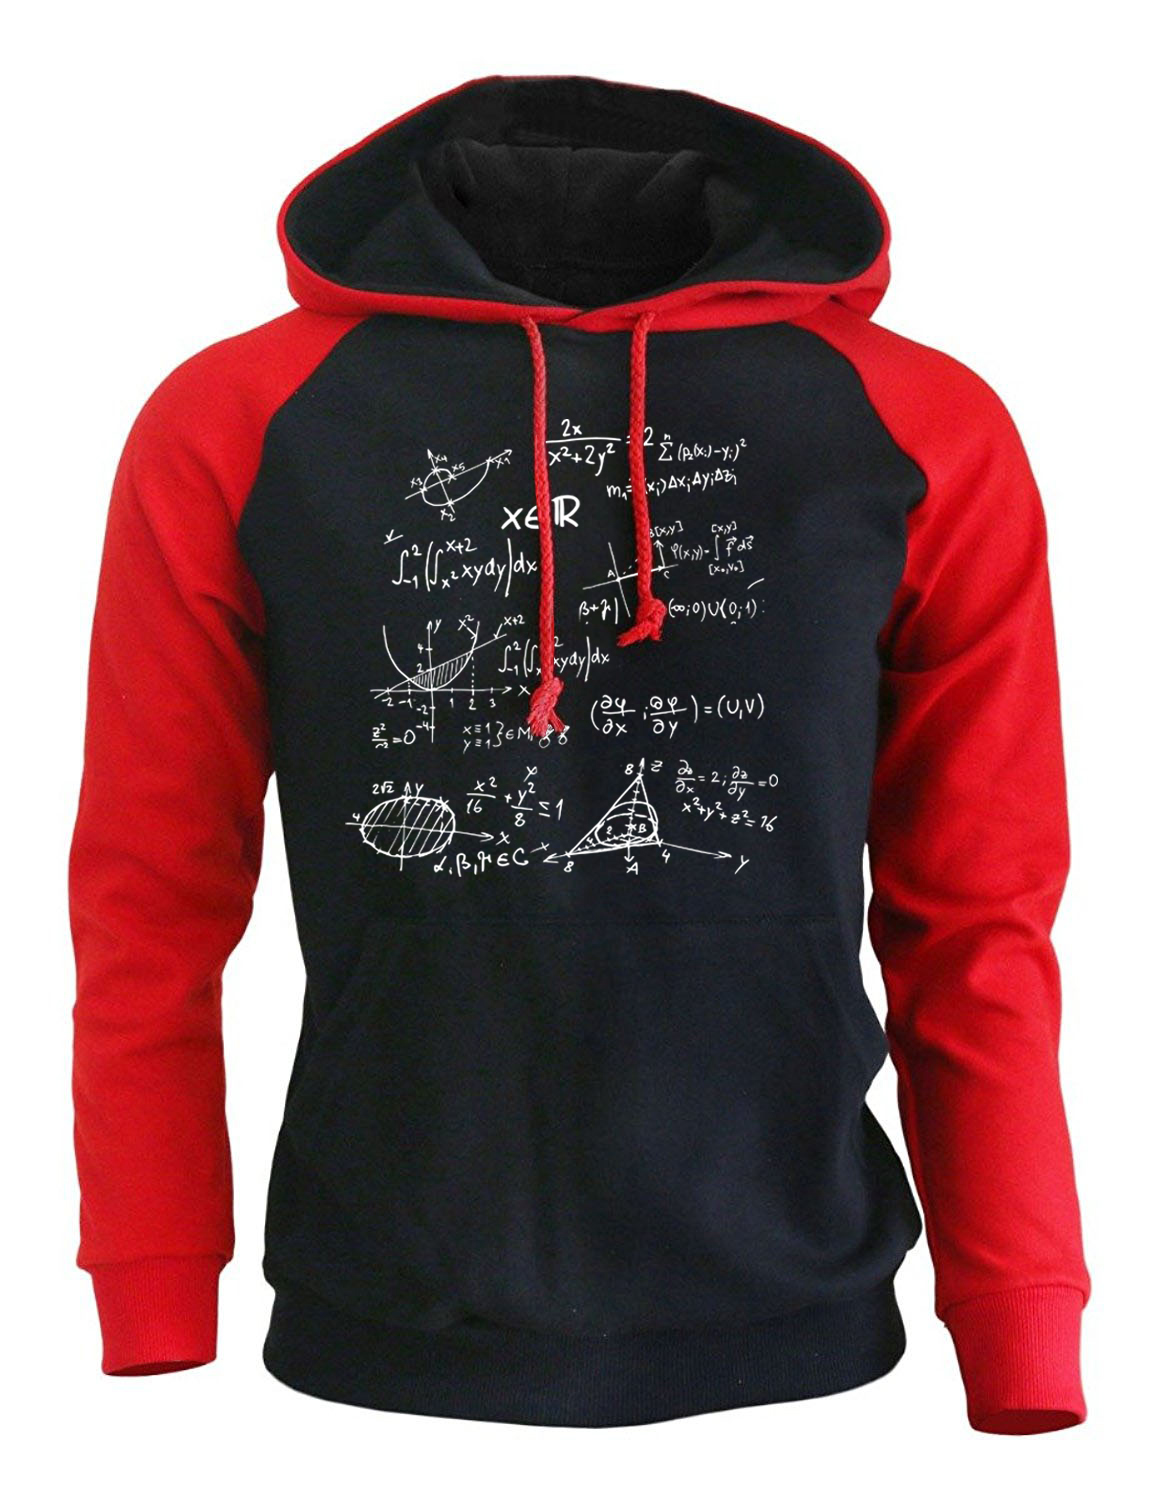 Hoodies For Men 2018 Autumn Winter Mathematical Formula The Big Bang Theory Fashion Mens Sweatshirt Brand Fitness Tracksuit New